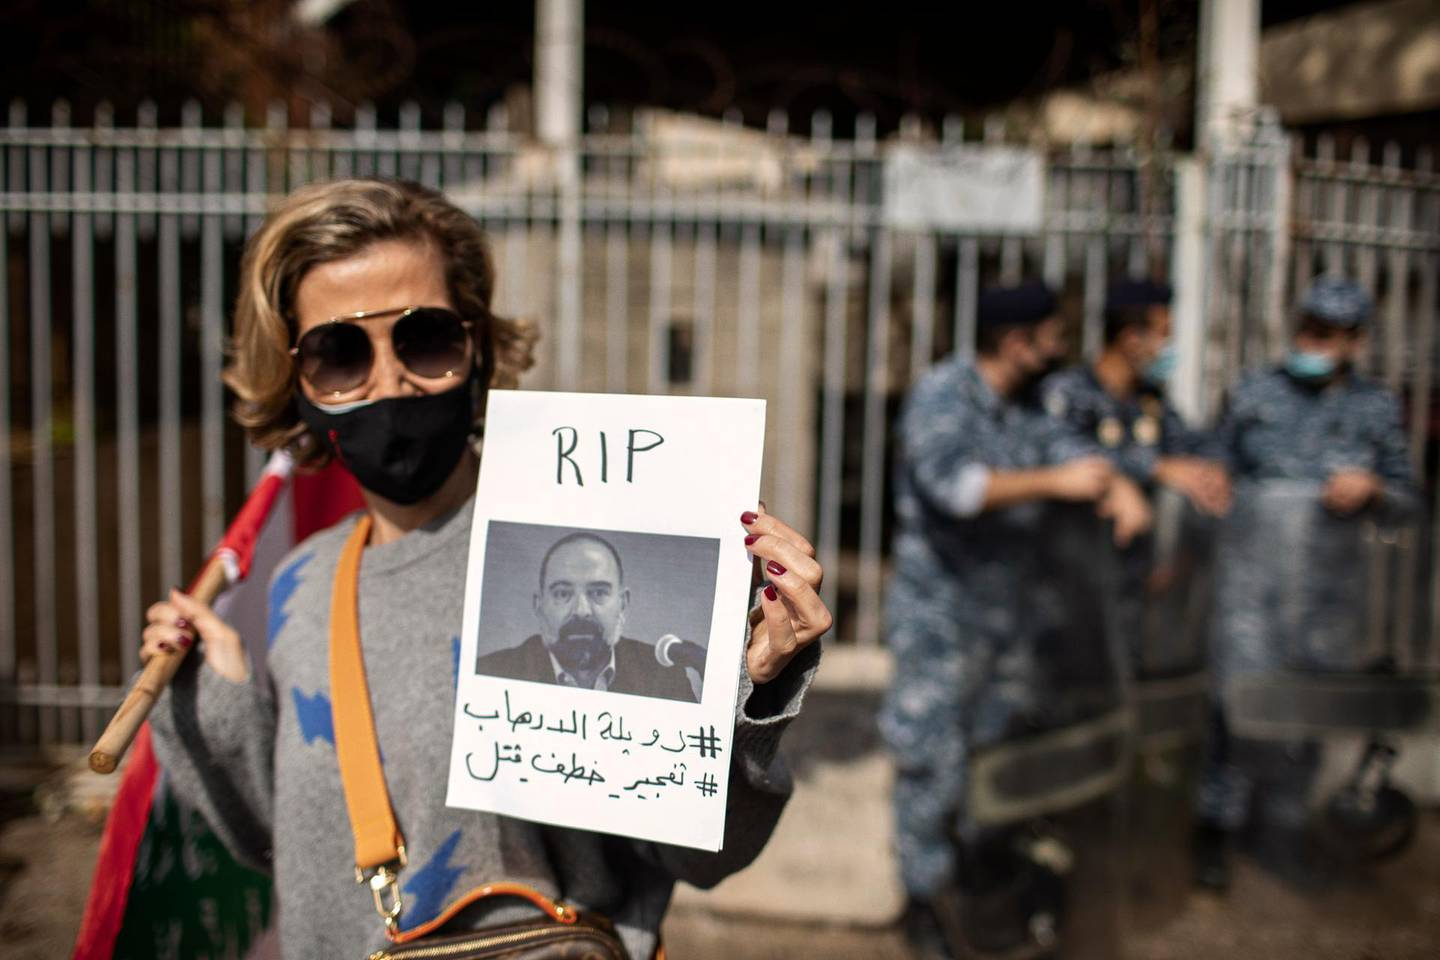 BEIRUT, LEBANON - FEBRUARY 4: A Lebanese protesterdemands justice after the assassination of Lokman Slim, a prominent Hezbollah critic, who was reportedly found shot dead in his car in South Lebanon on February 4, 2021 in Beirut, Lebanon.  (Photo by Diego Ibarra Sanchez/Getty Images)